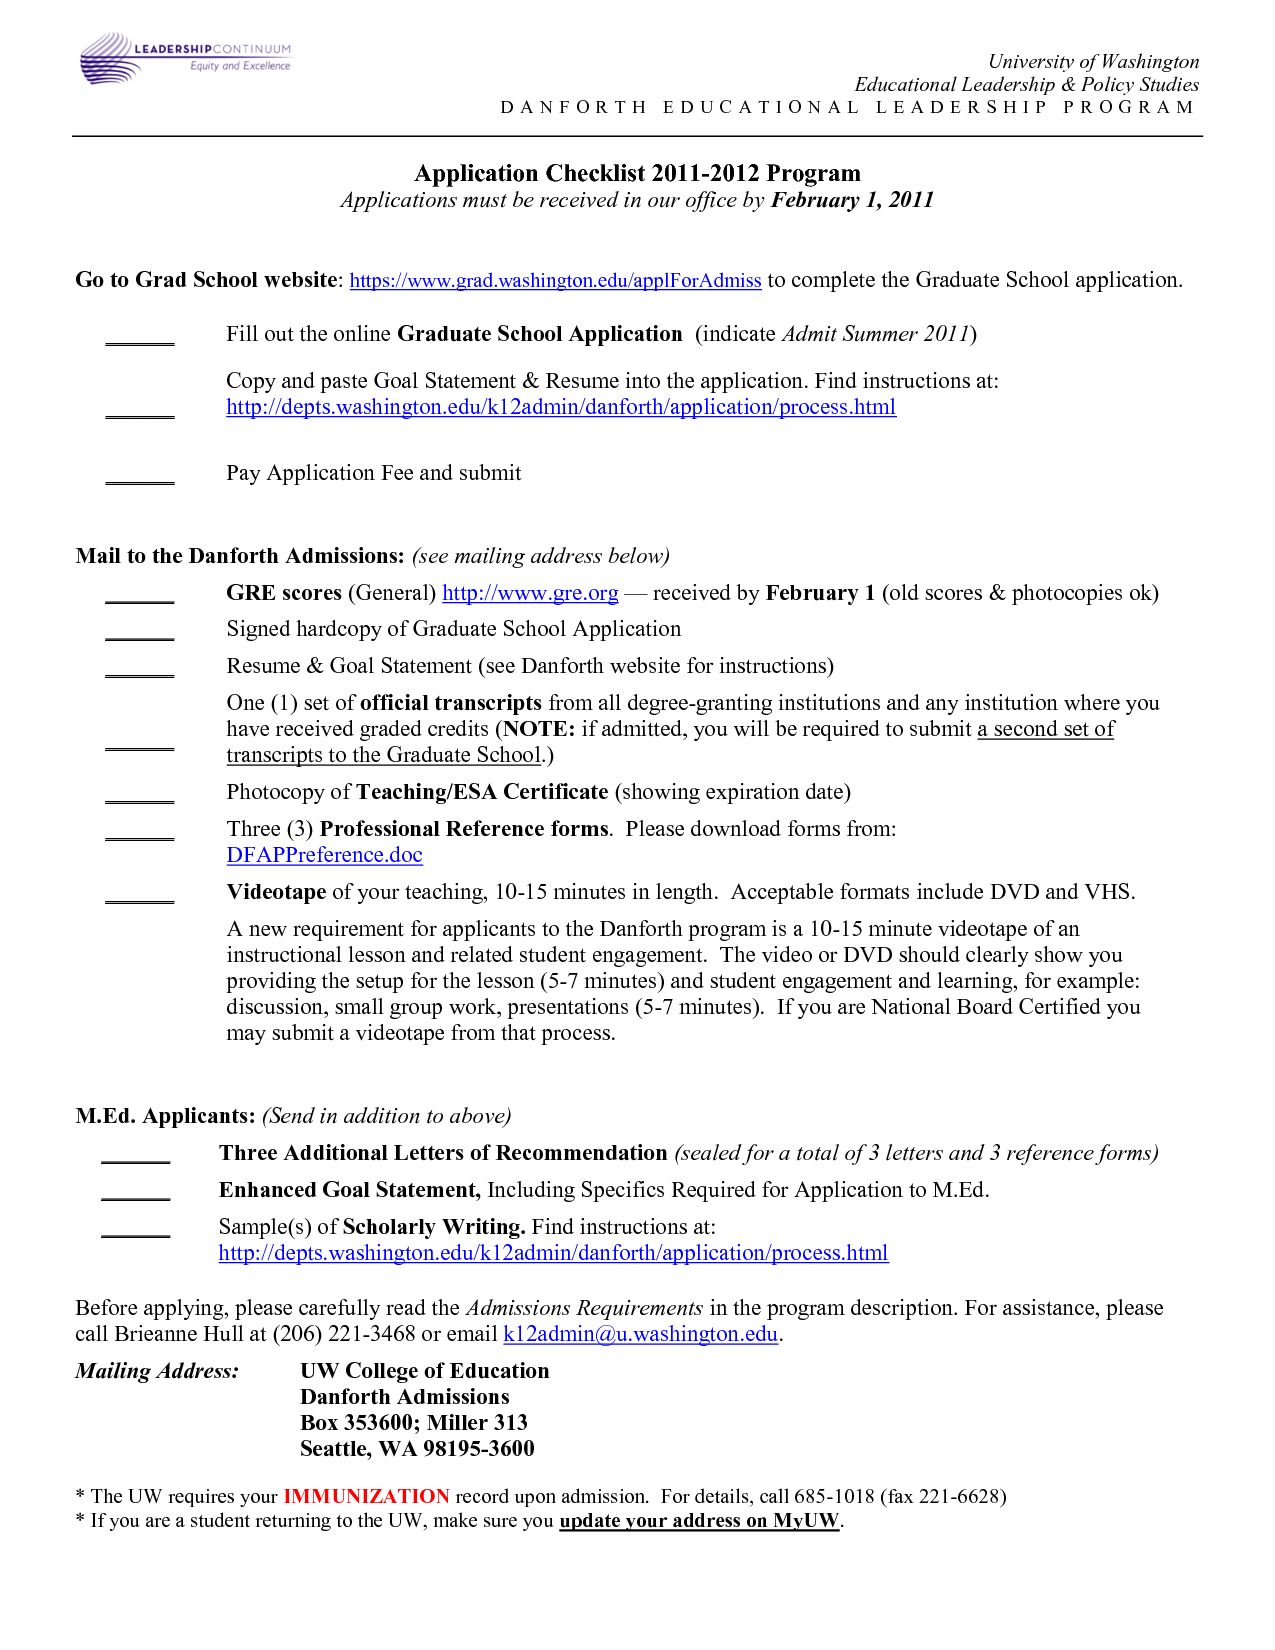 Sample Law School Resume Graduate School Resume Format  Httpwwwresumecareer